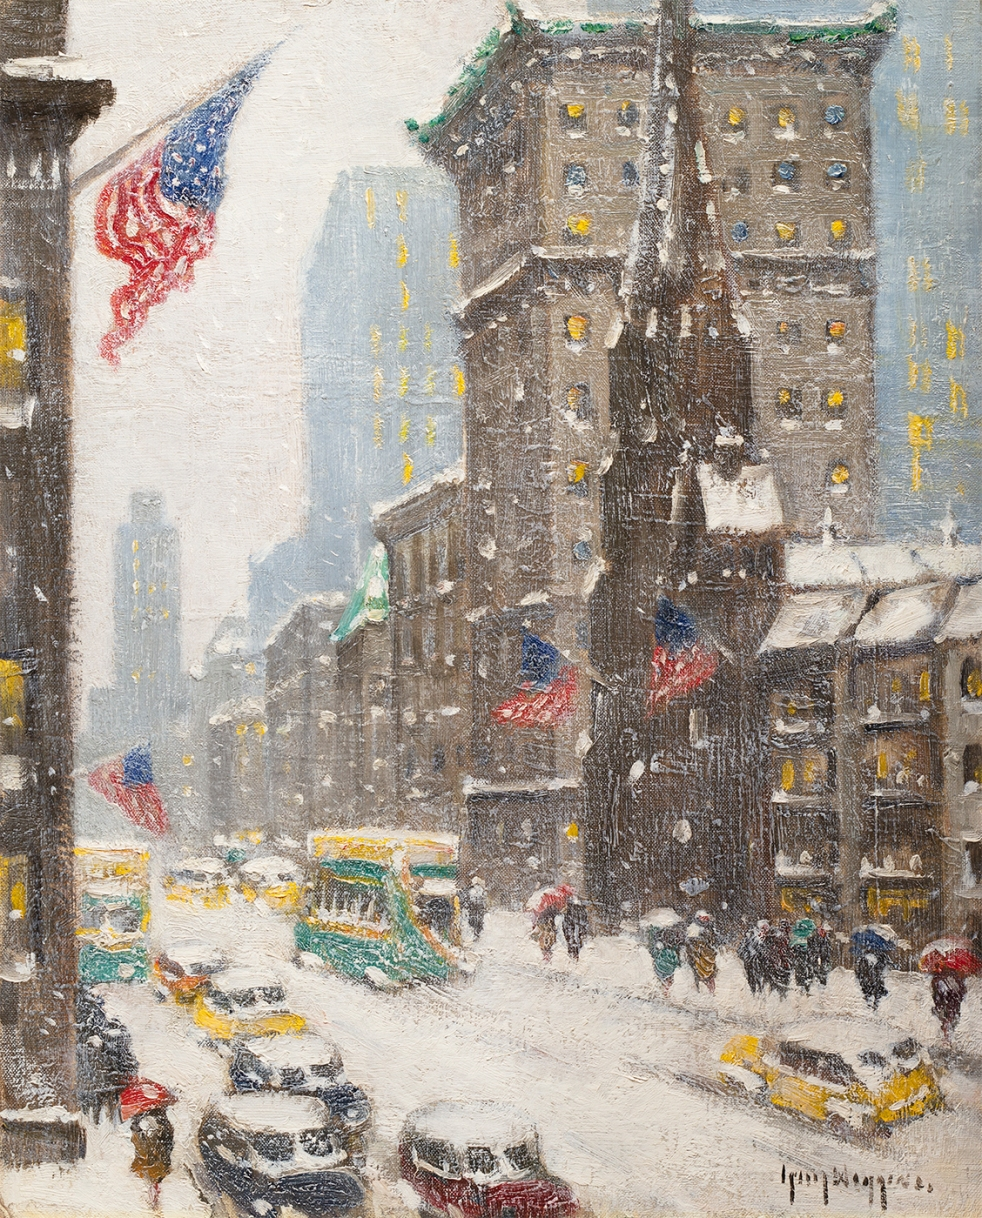 Wiggins-Winter at 57th and 5th Ave, 1948